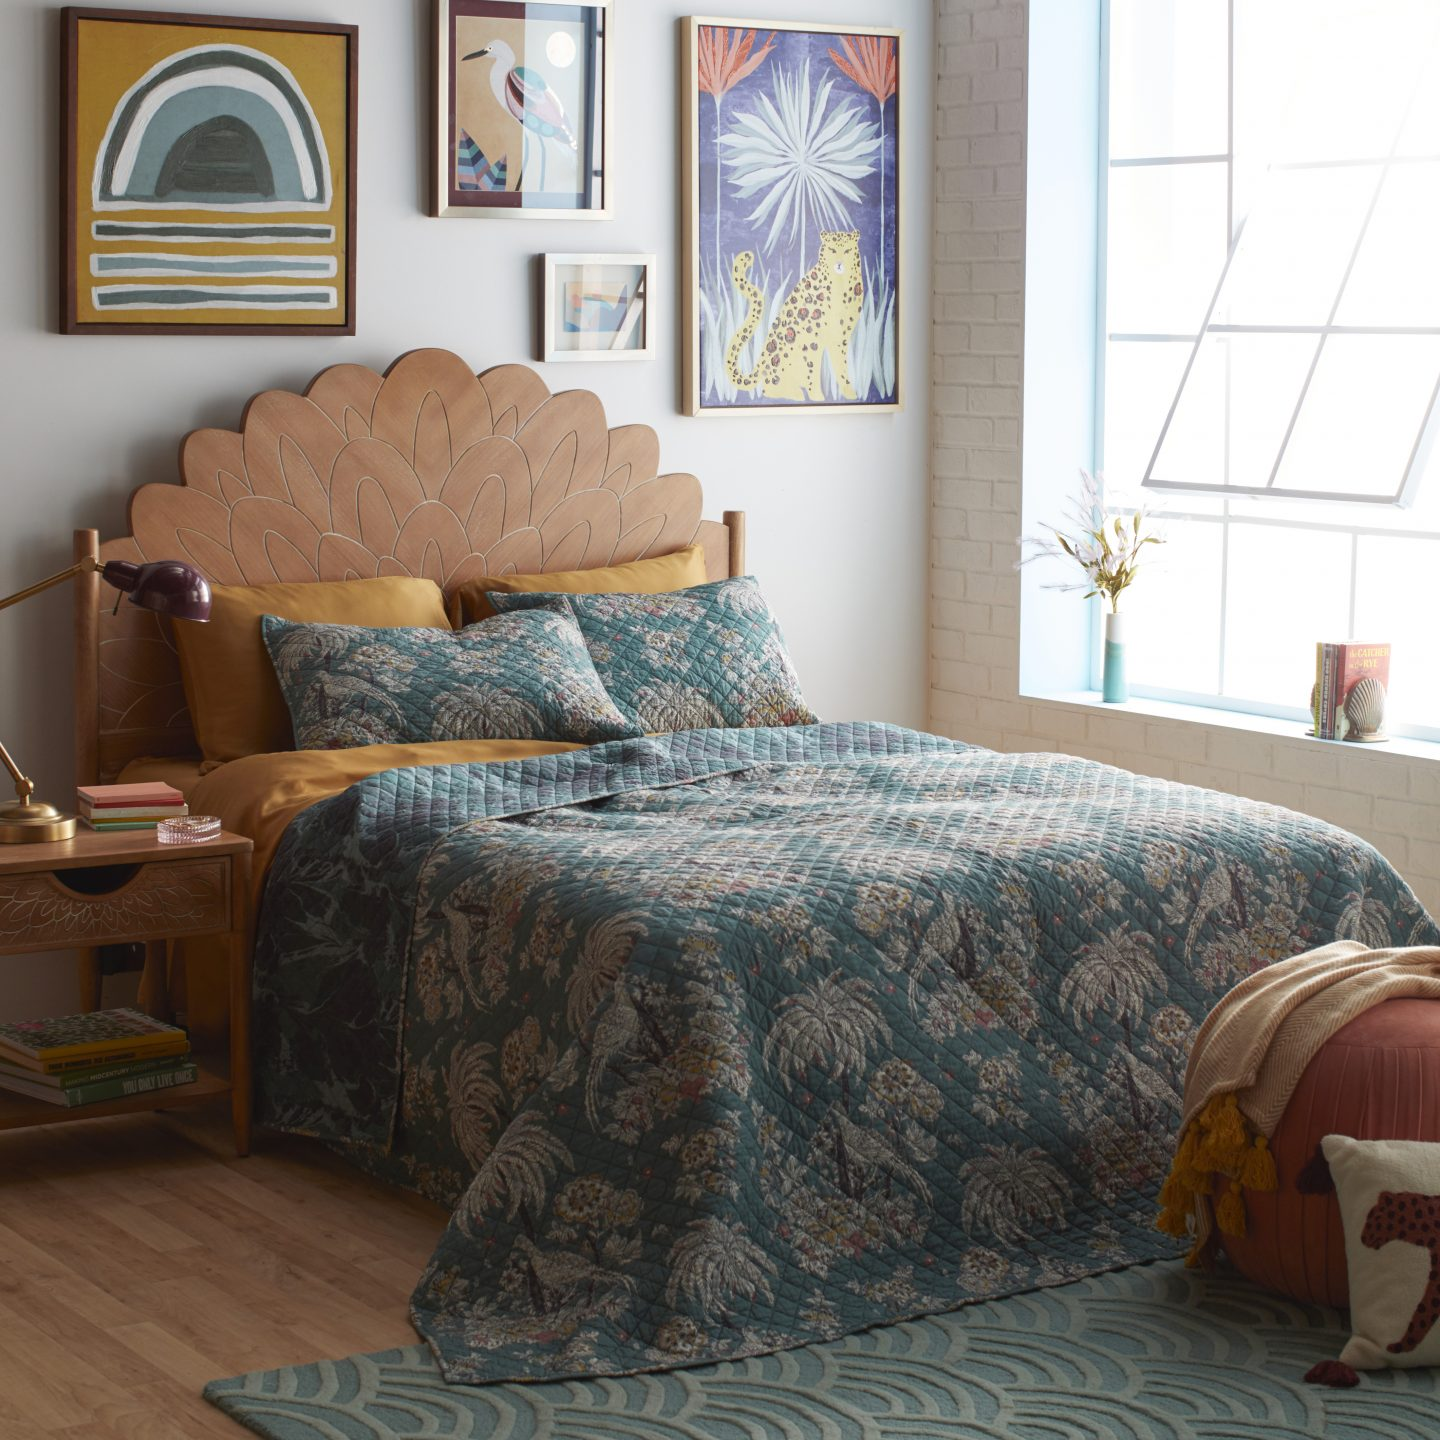 Affordable stores like the anthropology house: Drew Barrymore Flower Home